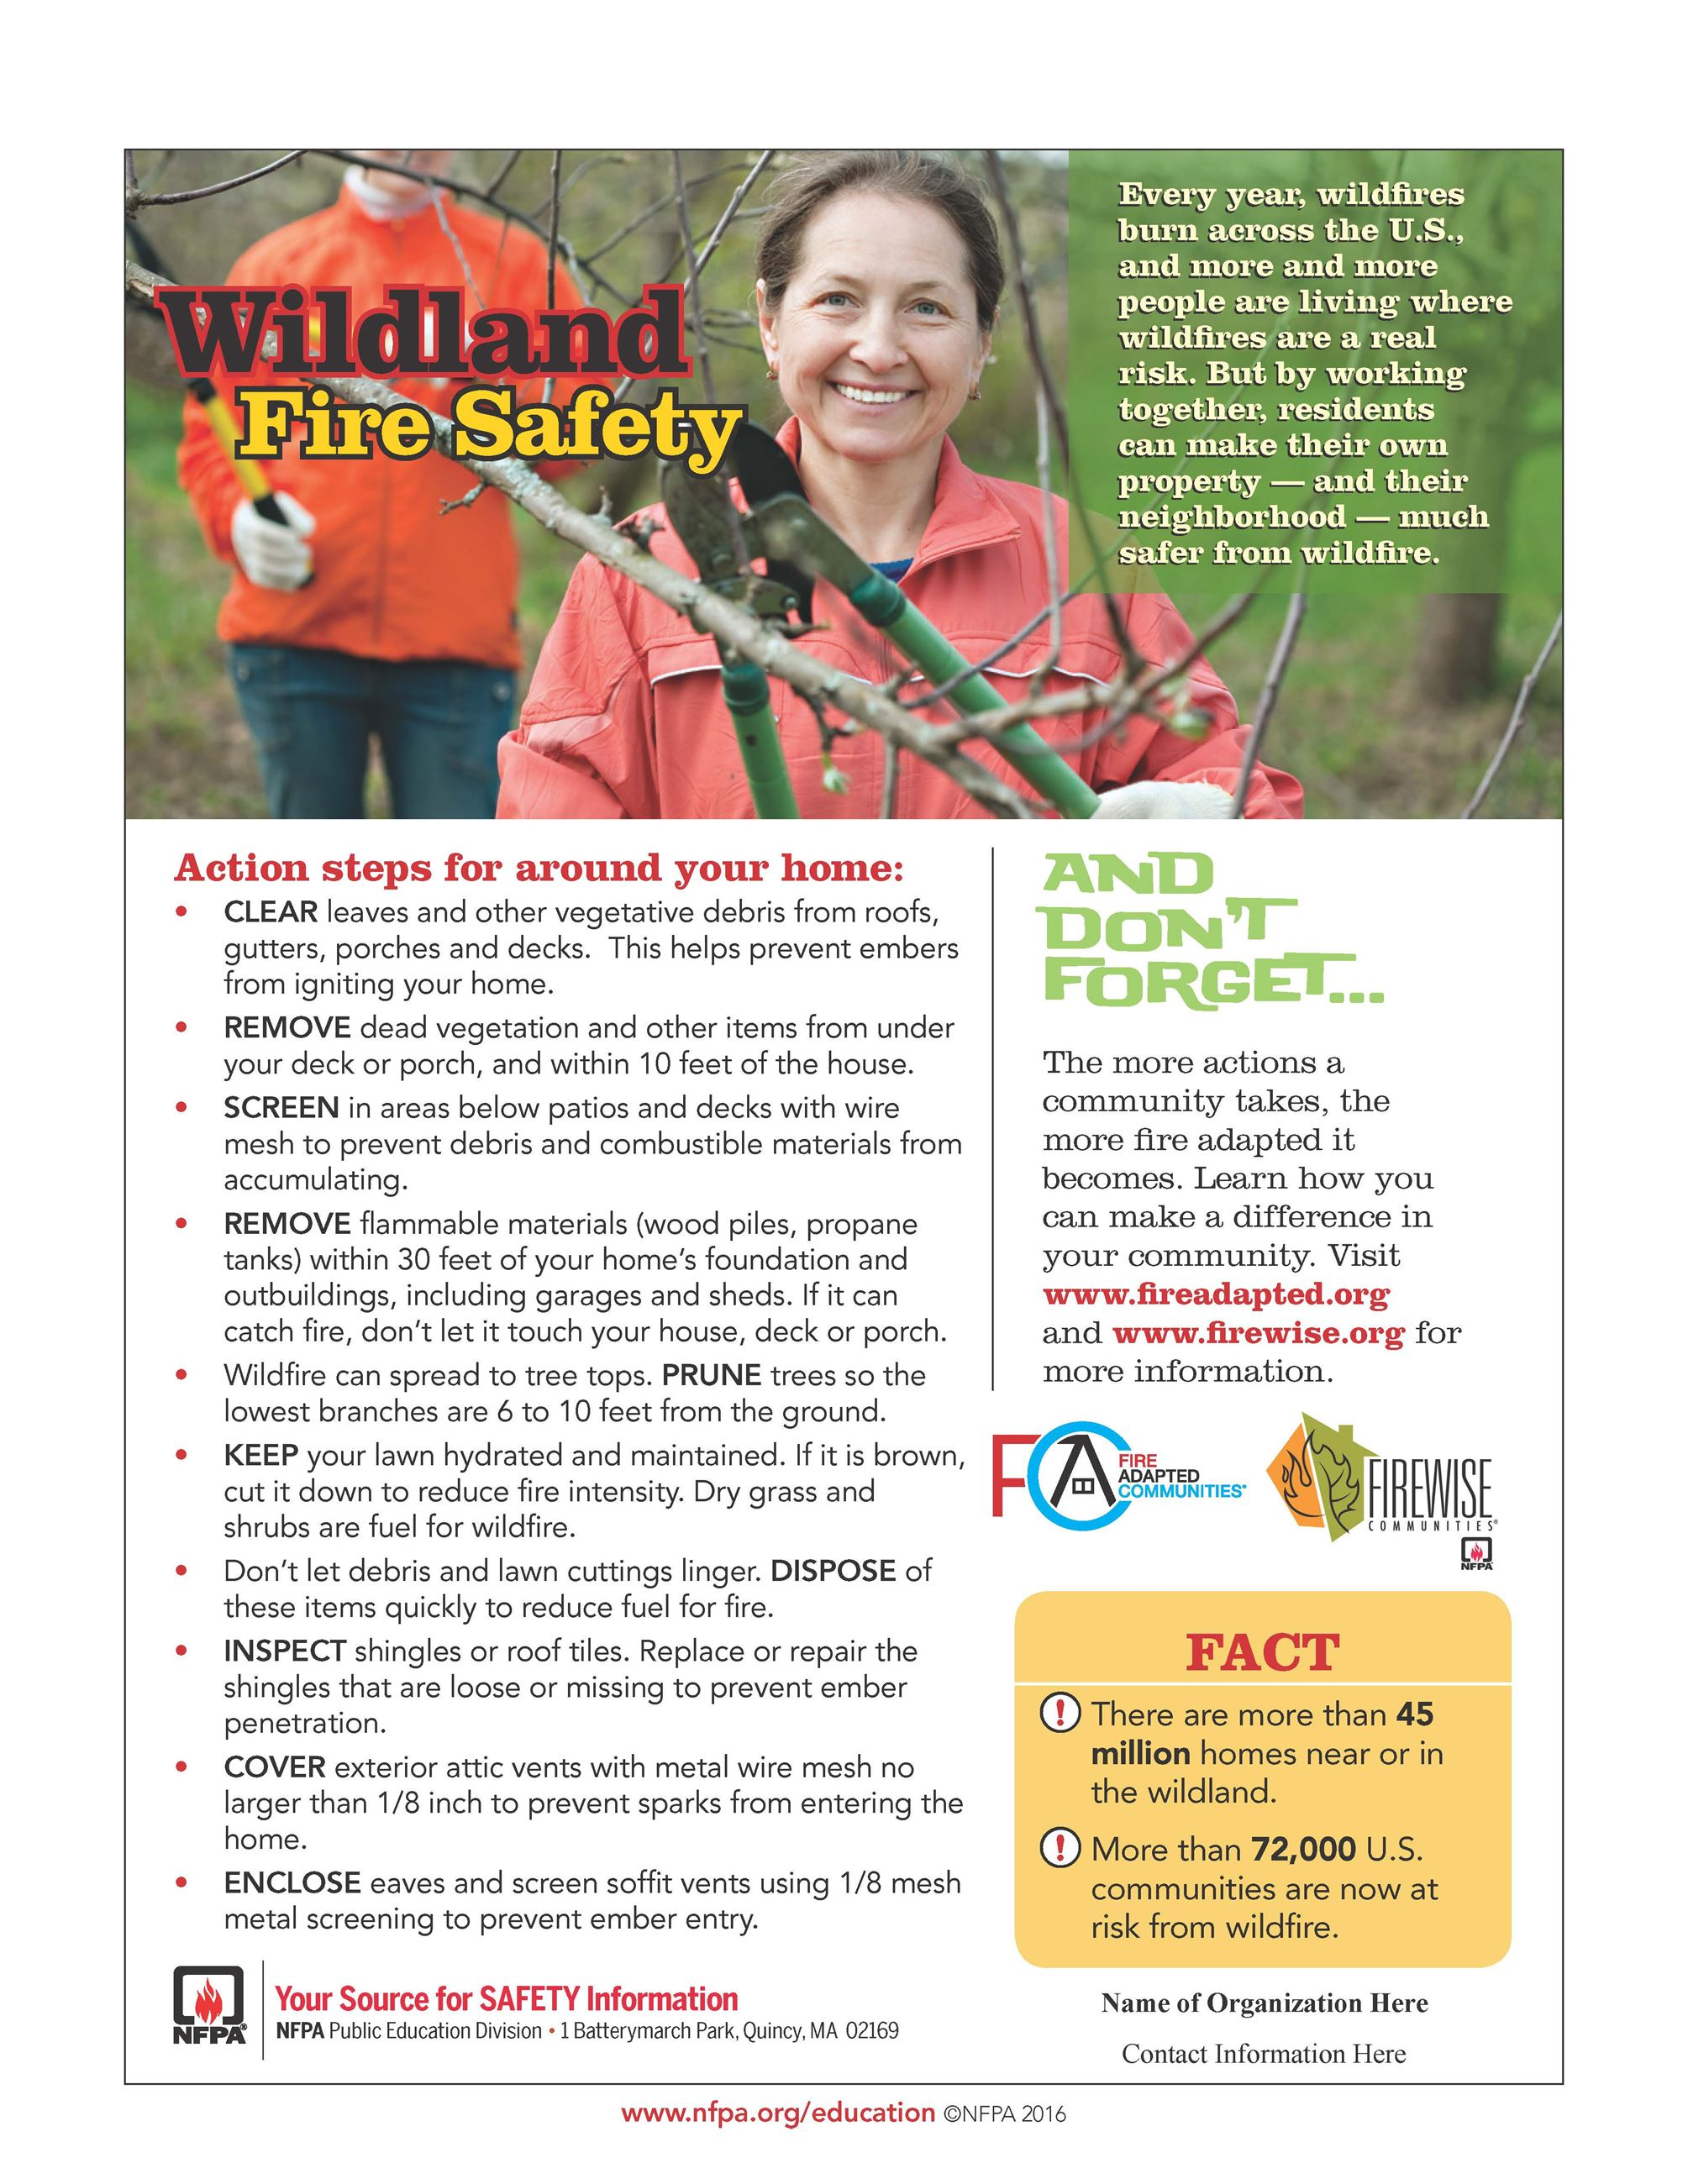 Wildland Fire Safety Tips